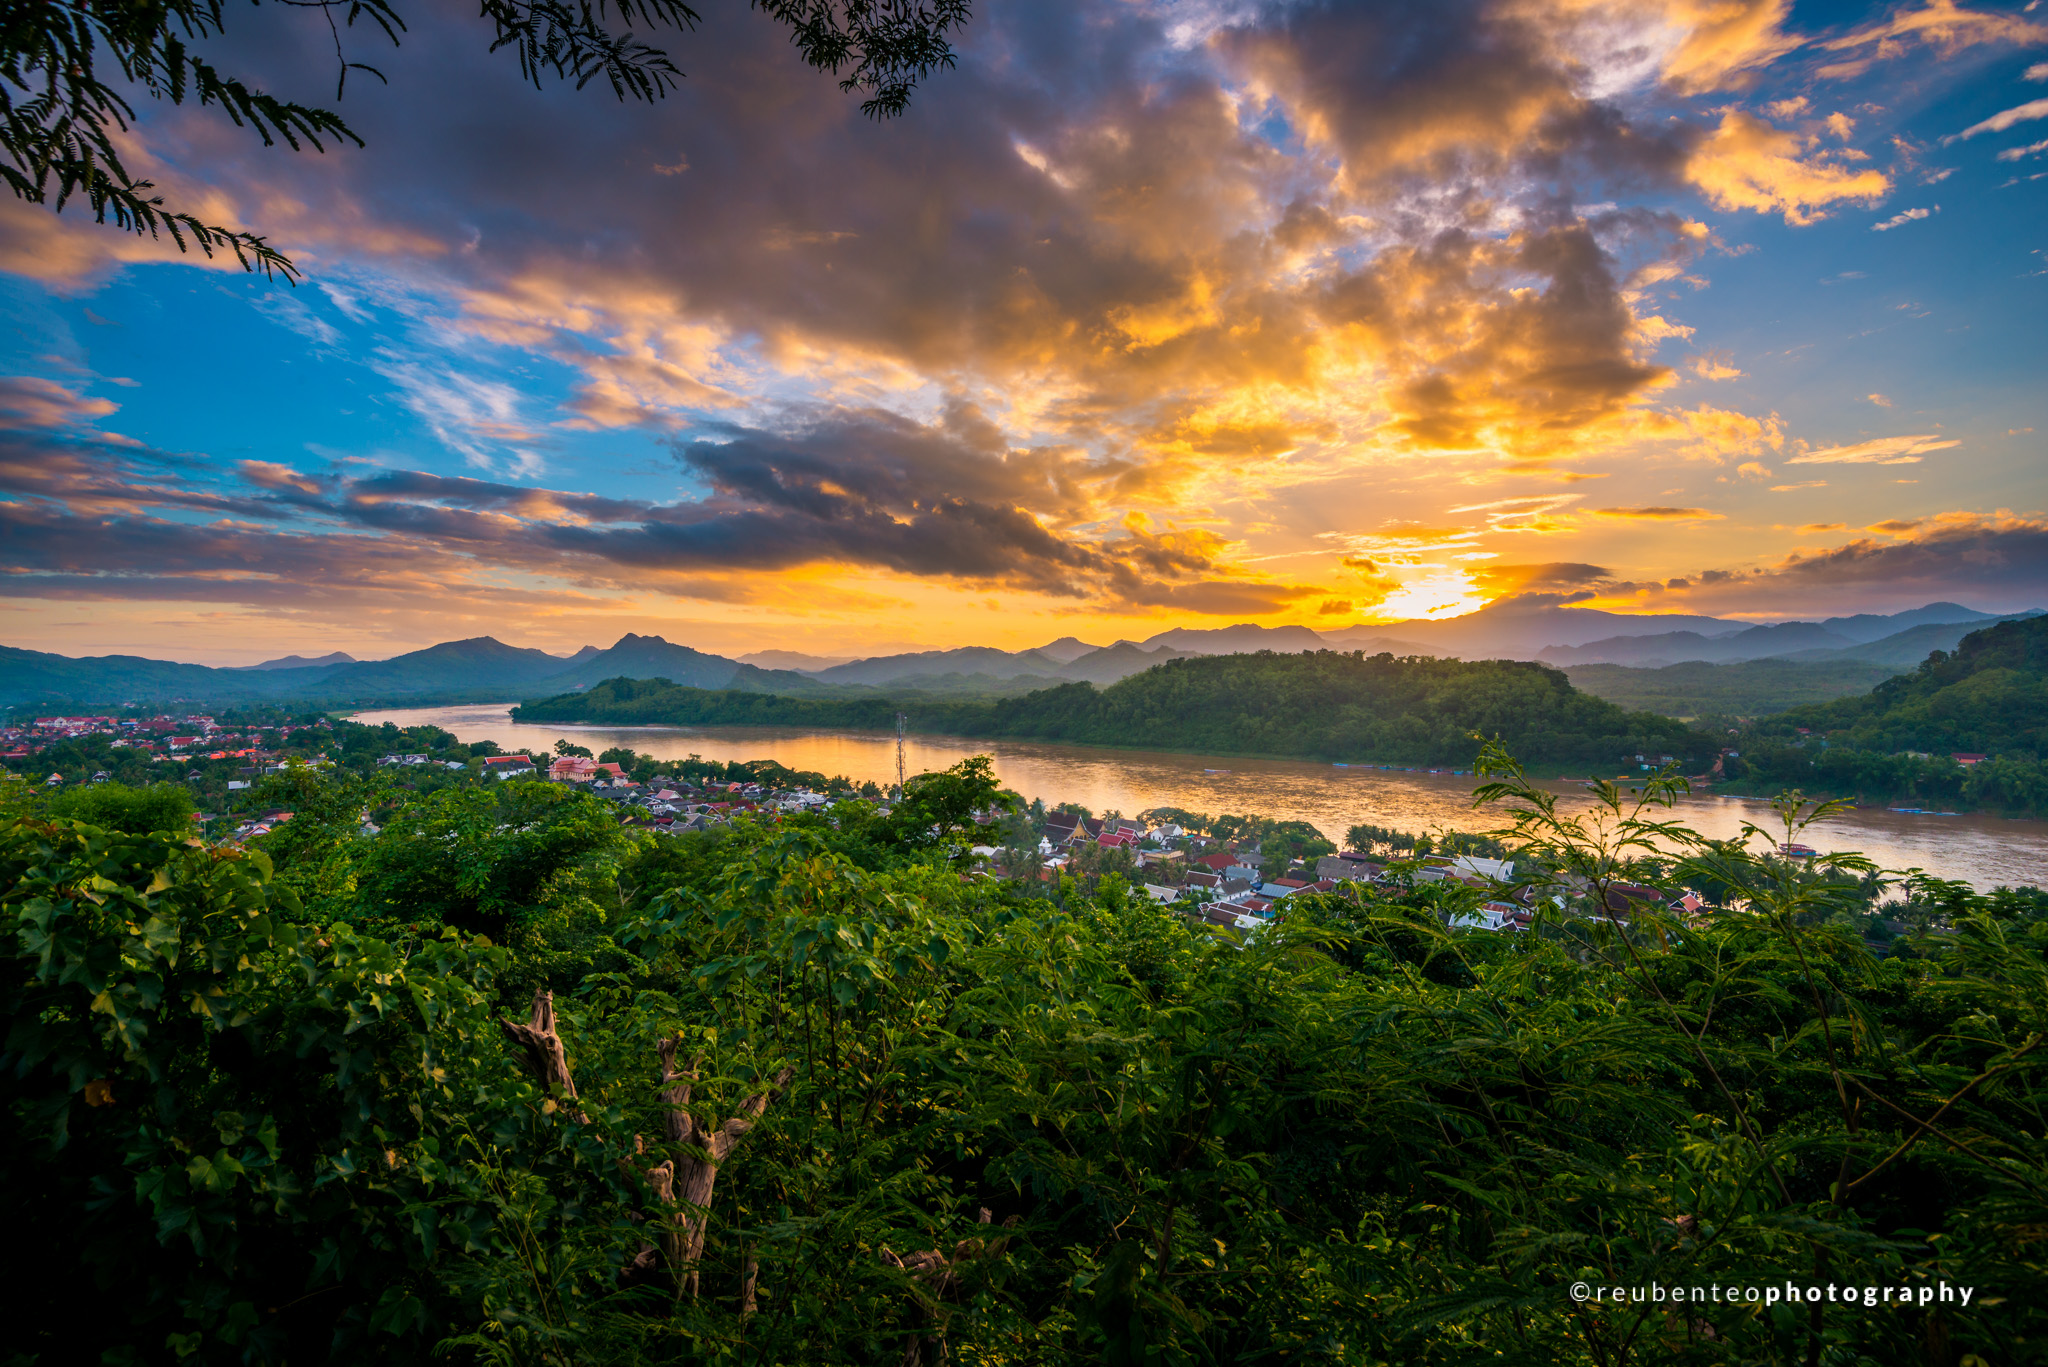 Sunset of Luang Prabang